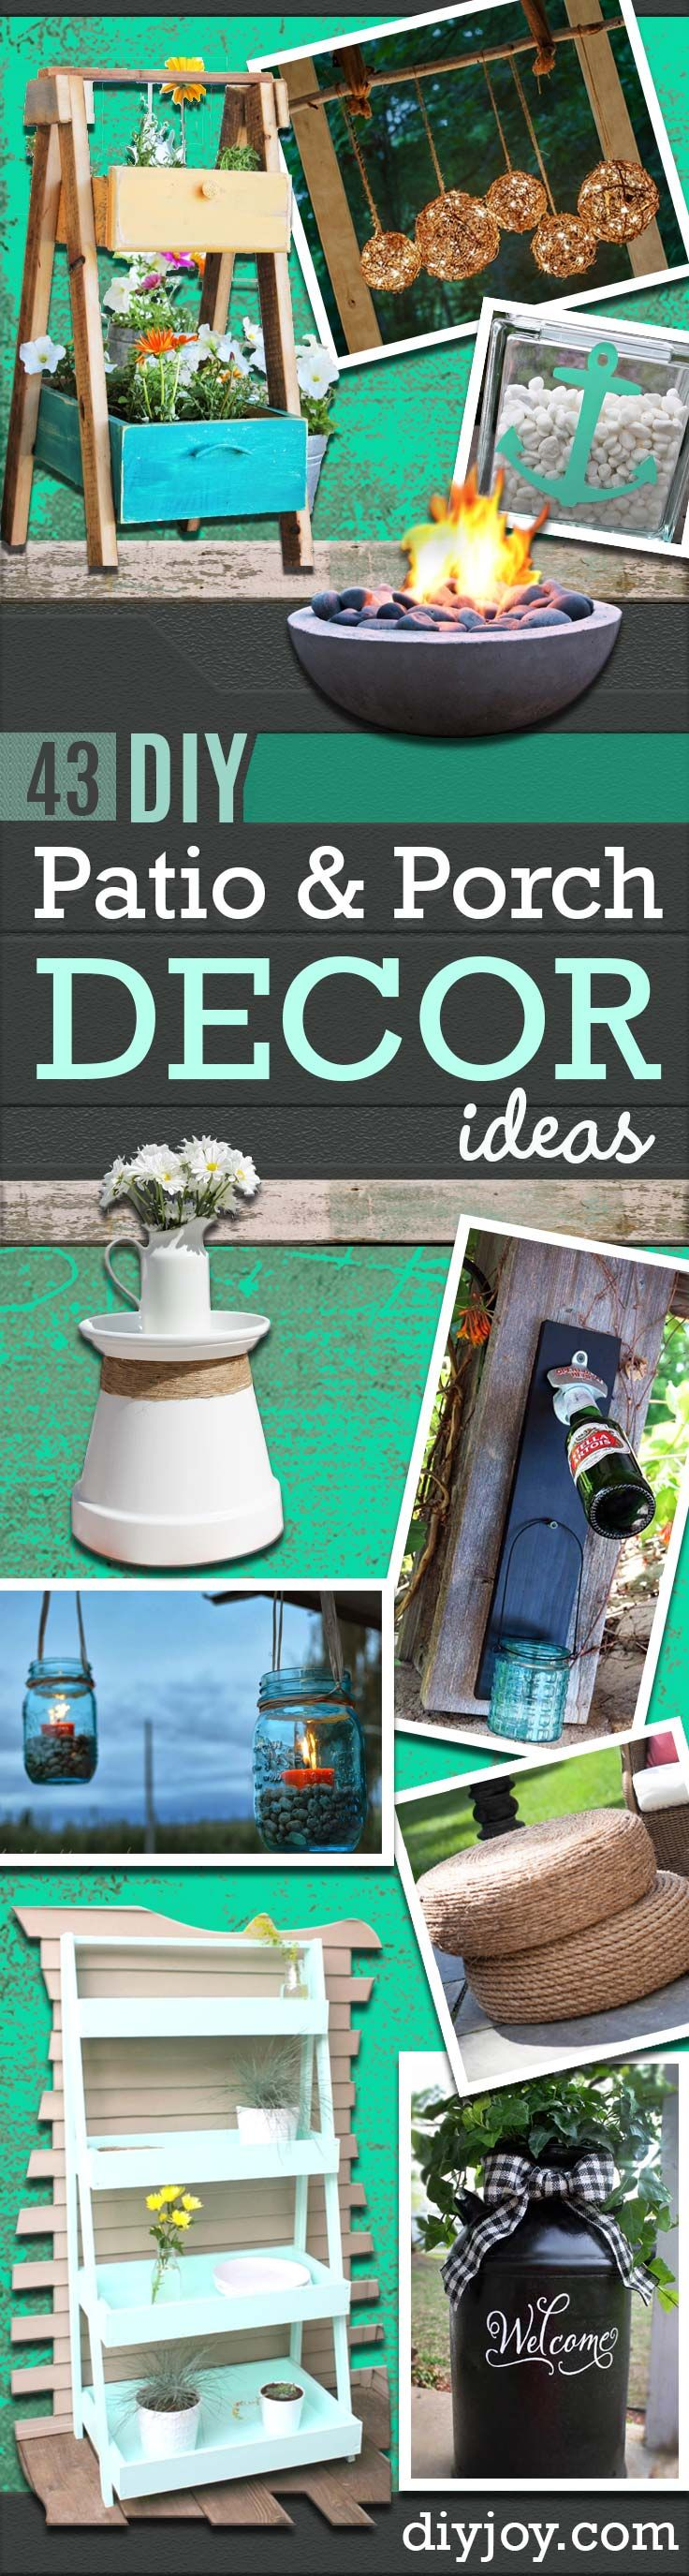 DIY Porch and Patio Ideas - Decor Projects and Furniture Tutorials You Can Build for the Outdoors -Swings, Bench, Cushions, Chairs, Daybeds and Pallet Signs  http://diyjoy.com/diy-porch-patio-decor-ideas